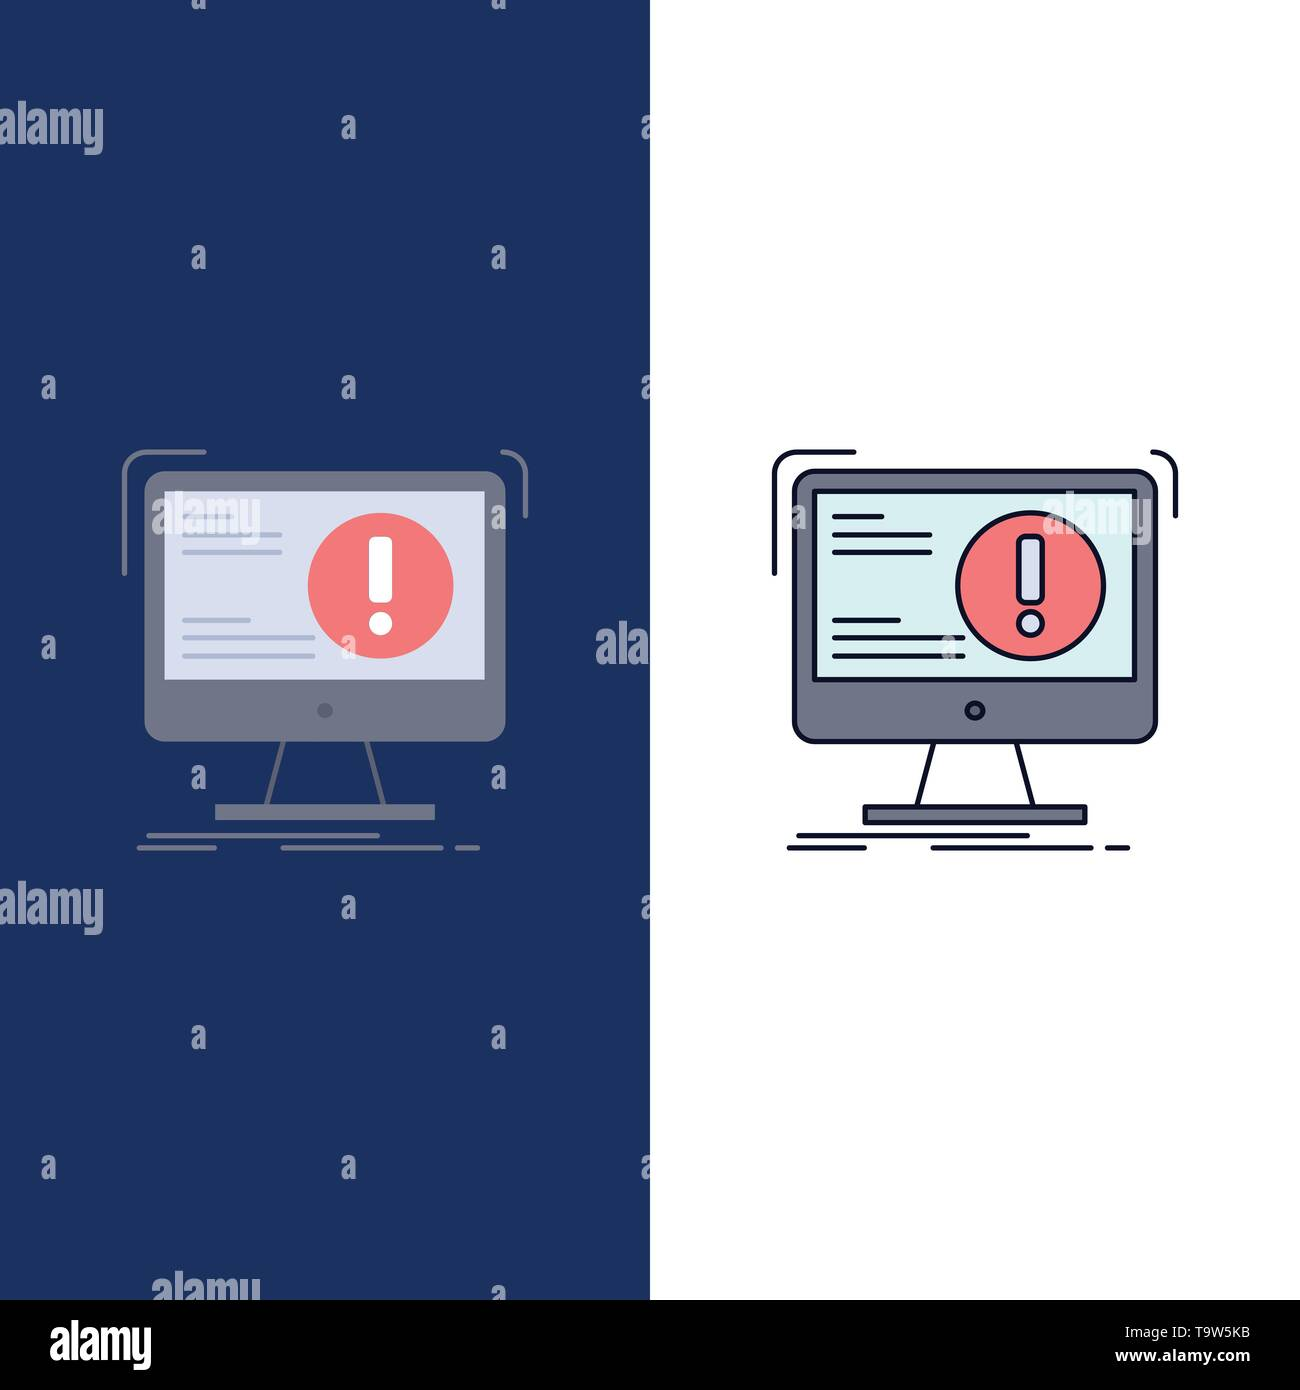 Alert, antivirus, attack, computer, virus Flat Color Icon Vector - Stock Image